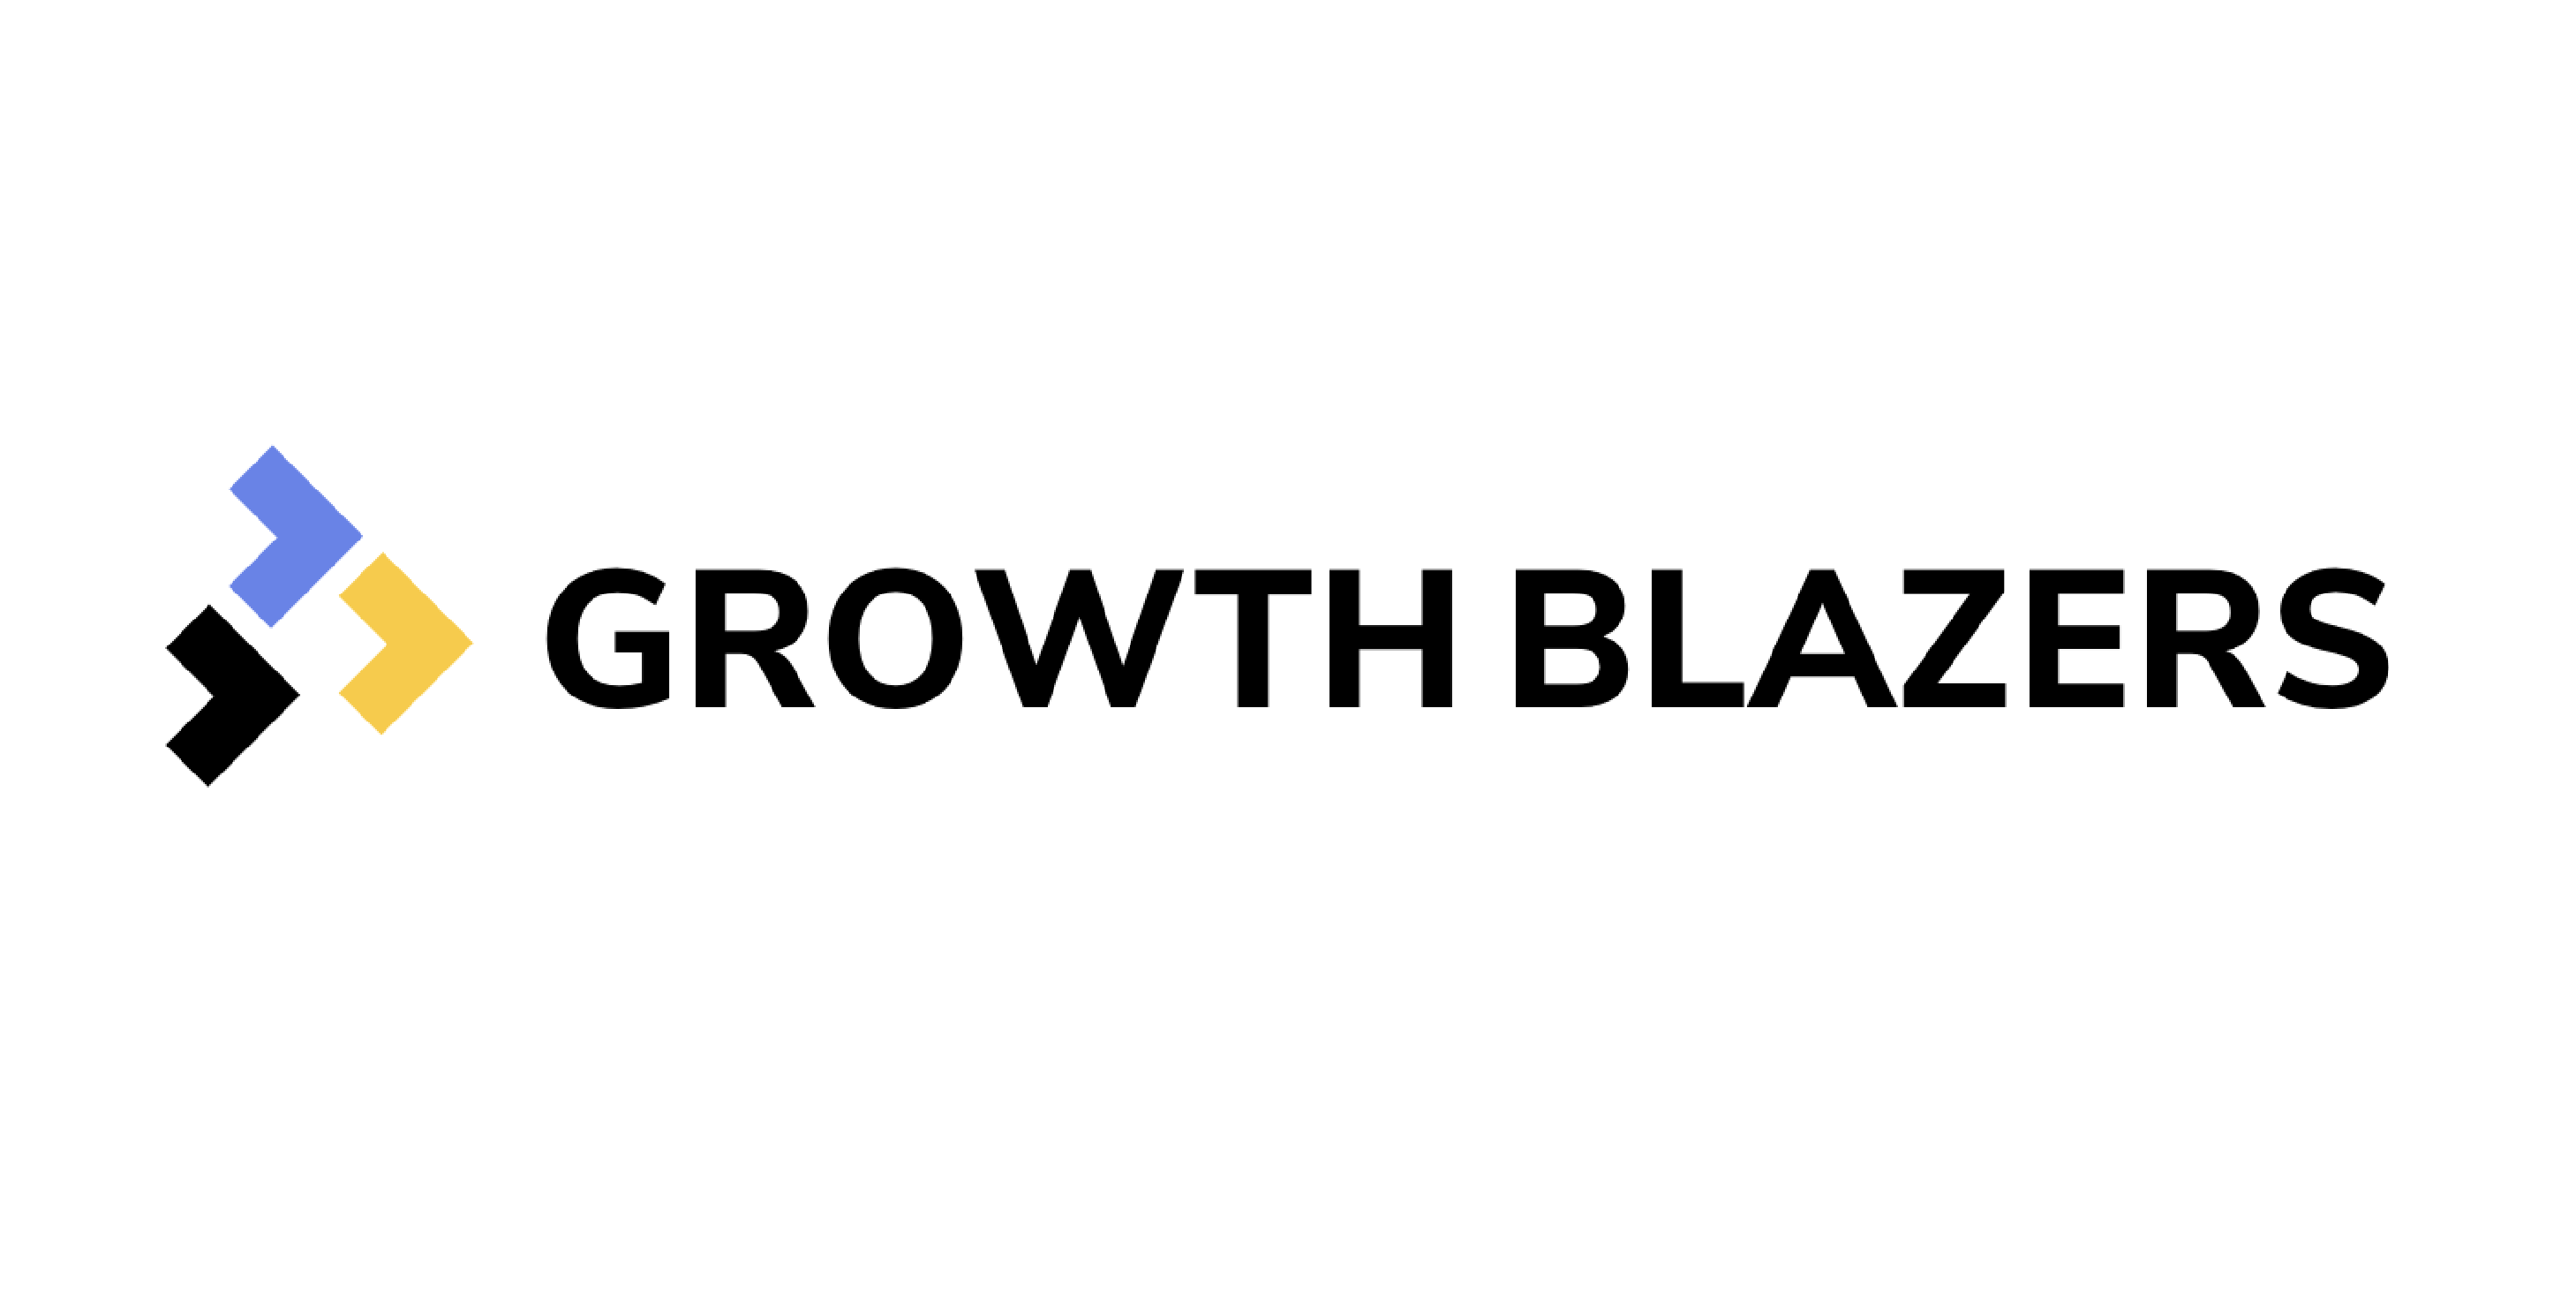 Growth Blazers Logo